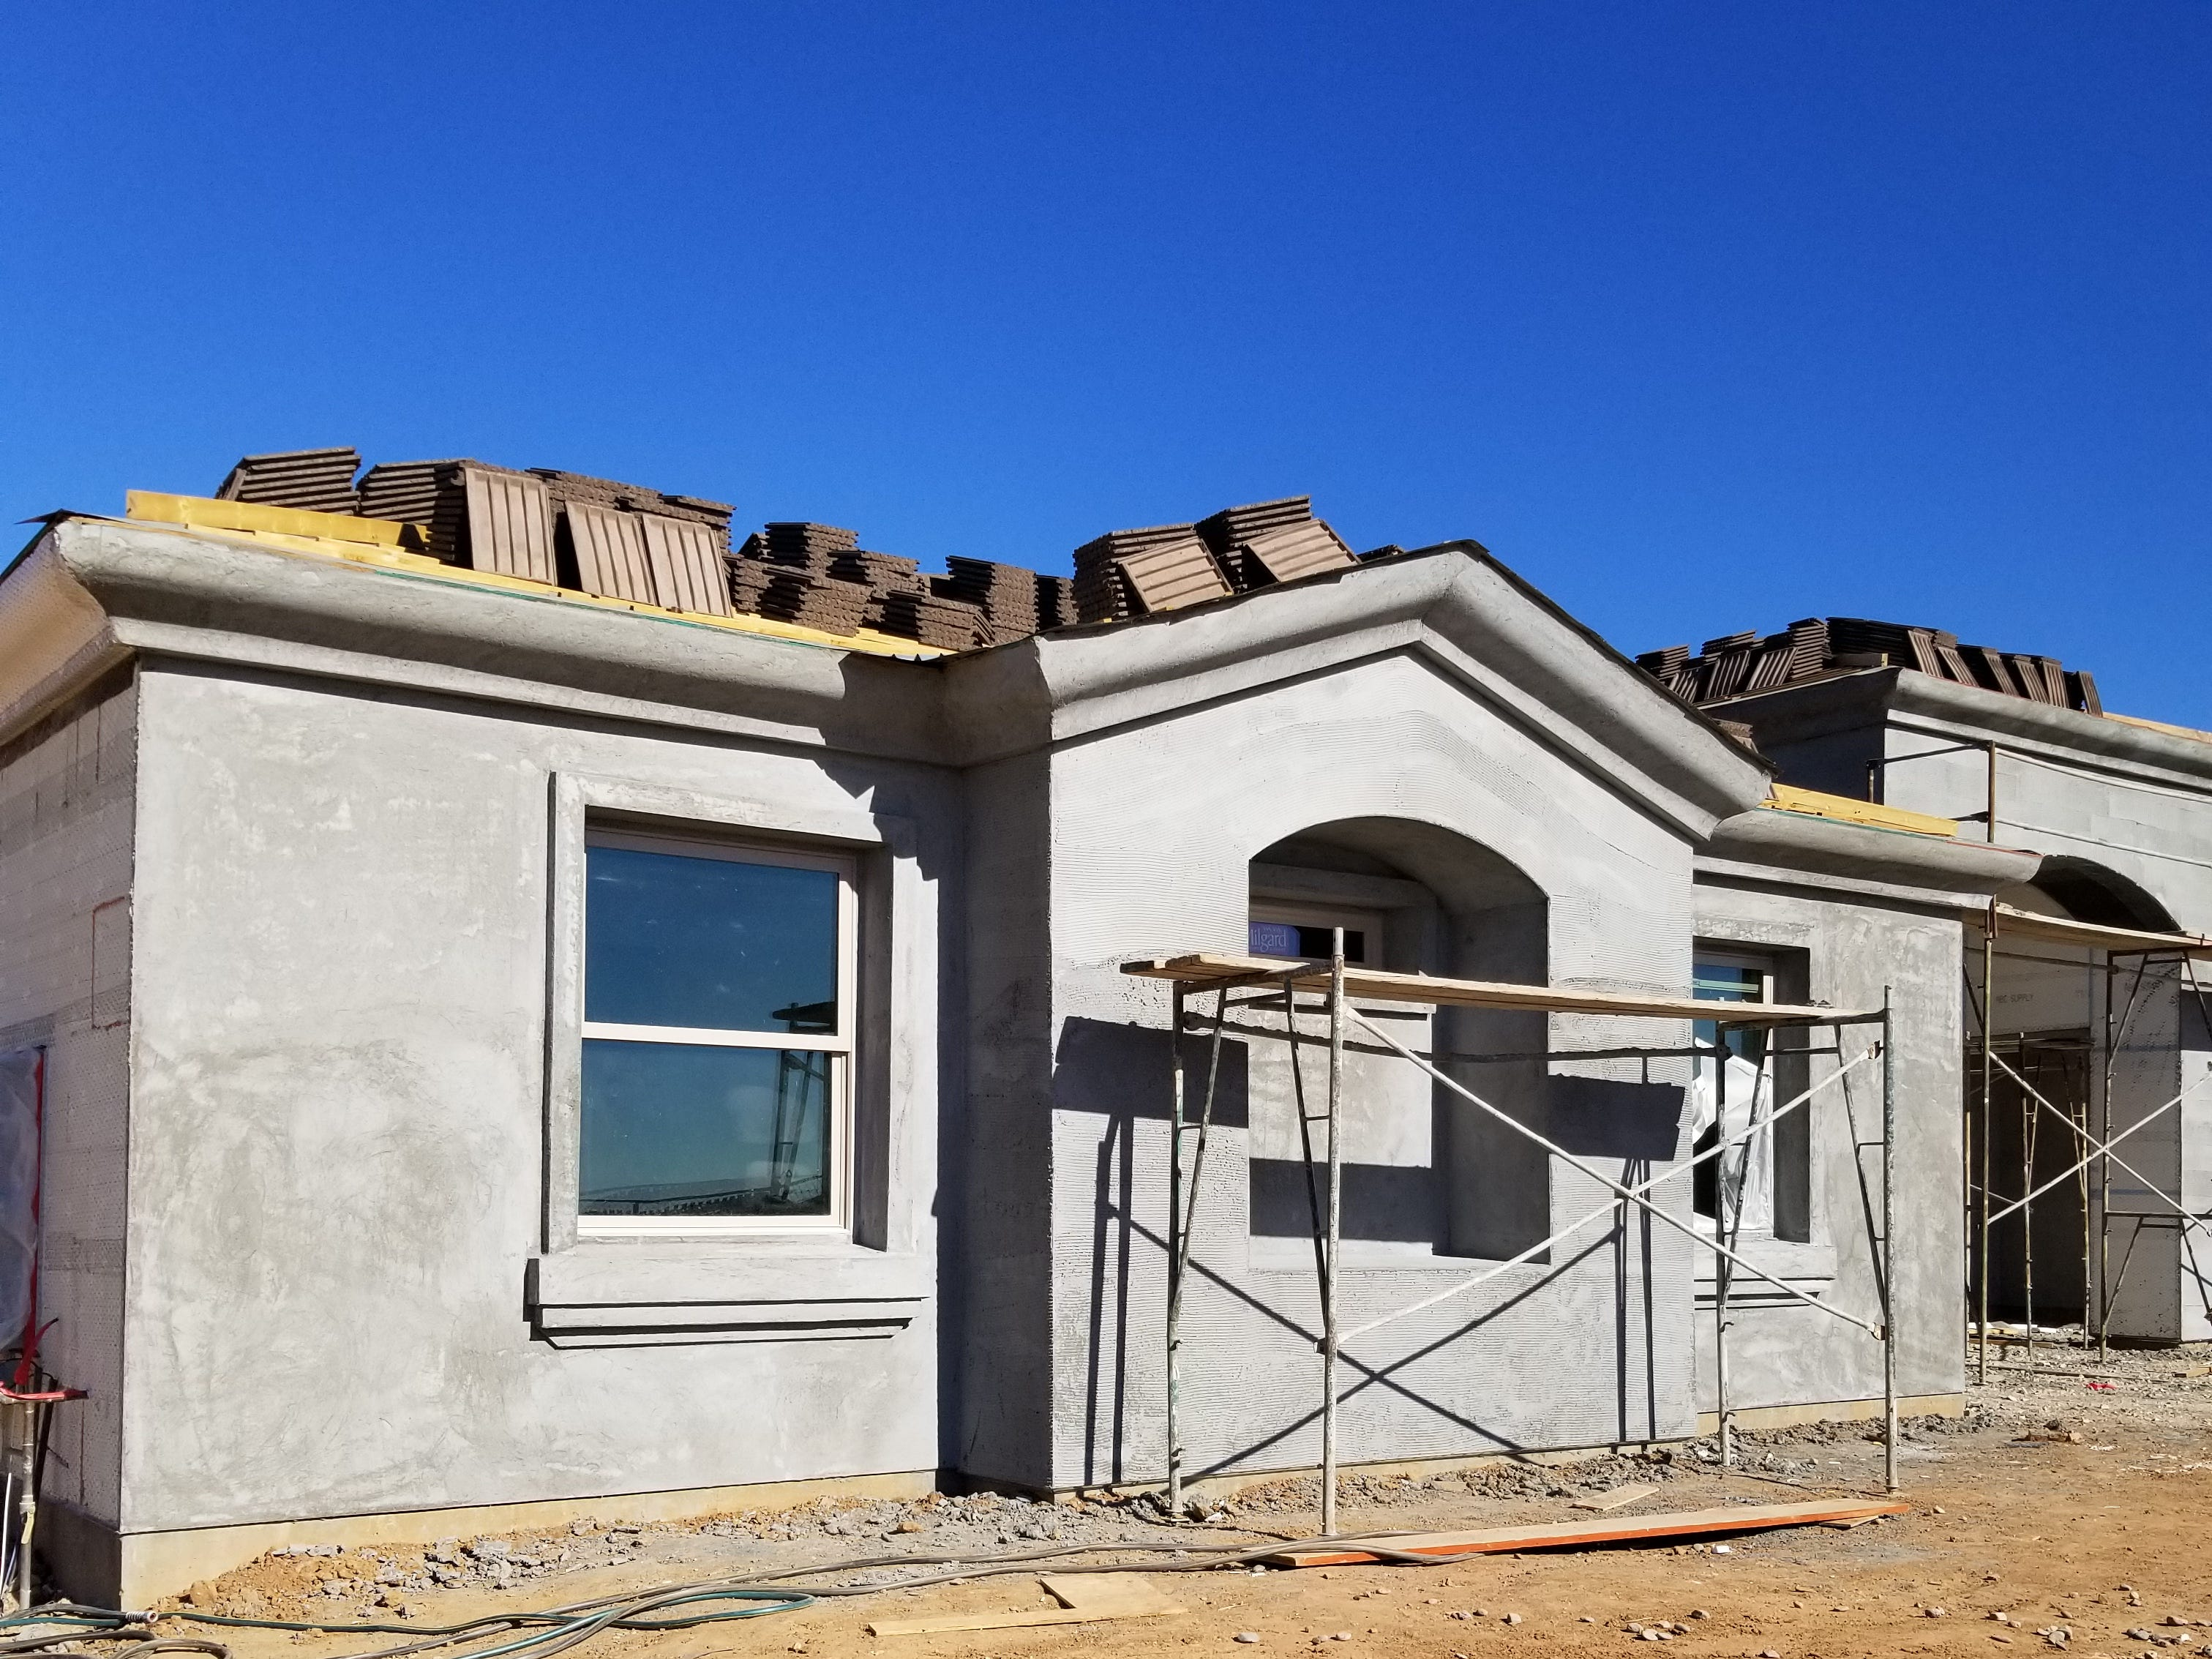 The home next door is also a Castle Rock insulating concrete forms construction, minus the color block, but in a later stage of construction. Finishing touches give no evidence of the protection, safety features and R-40 insulation that lies beneath.